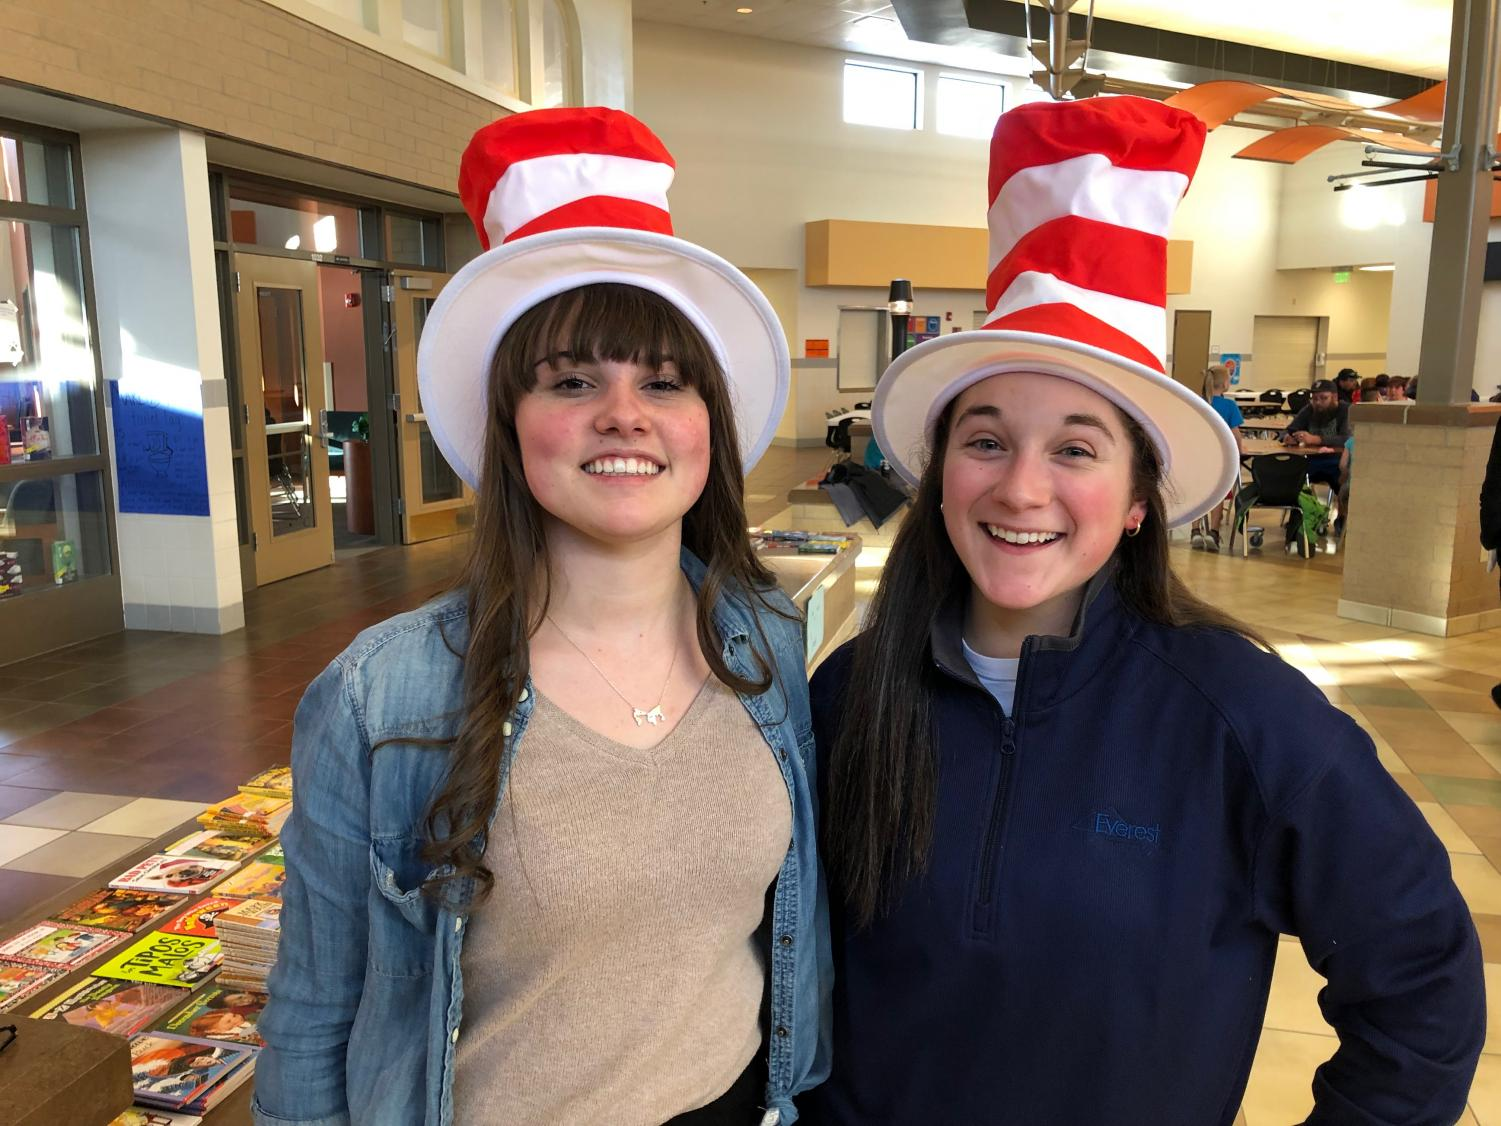 PHS SkillsUSA board members Ashlyn Aguirre and Maggie Cappiello volunteered for Bingo for Books on Tuesday, March 12.